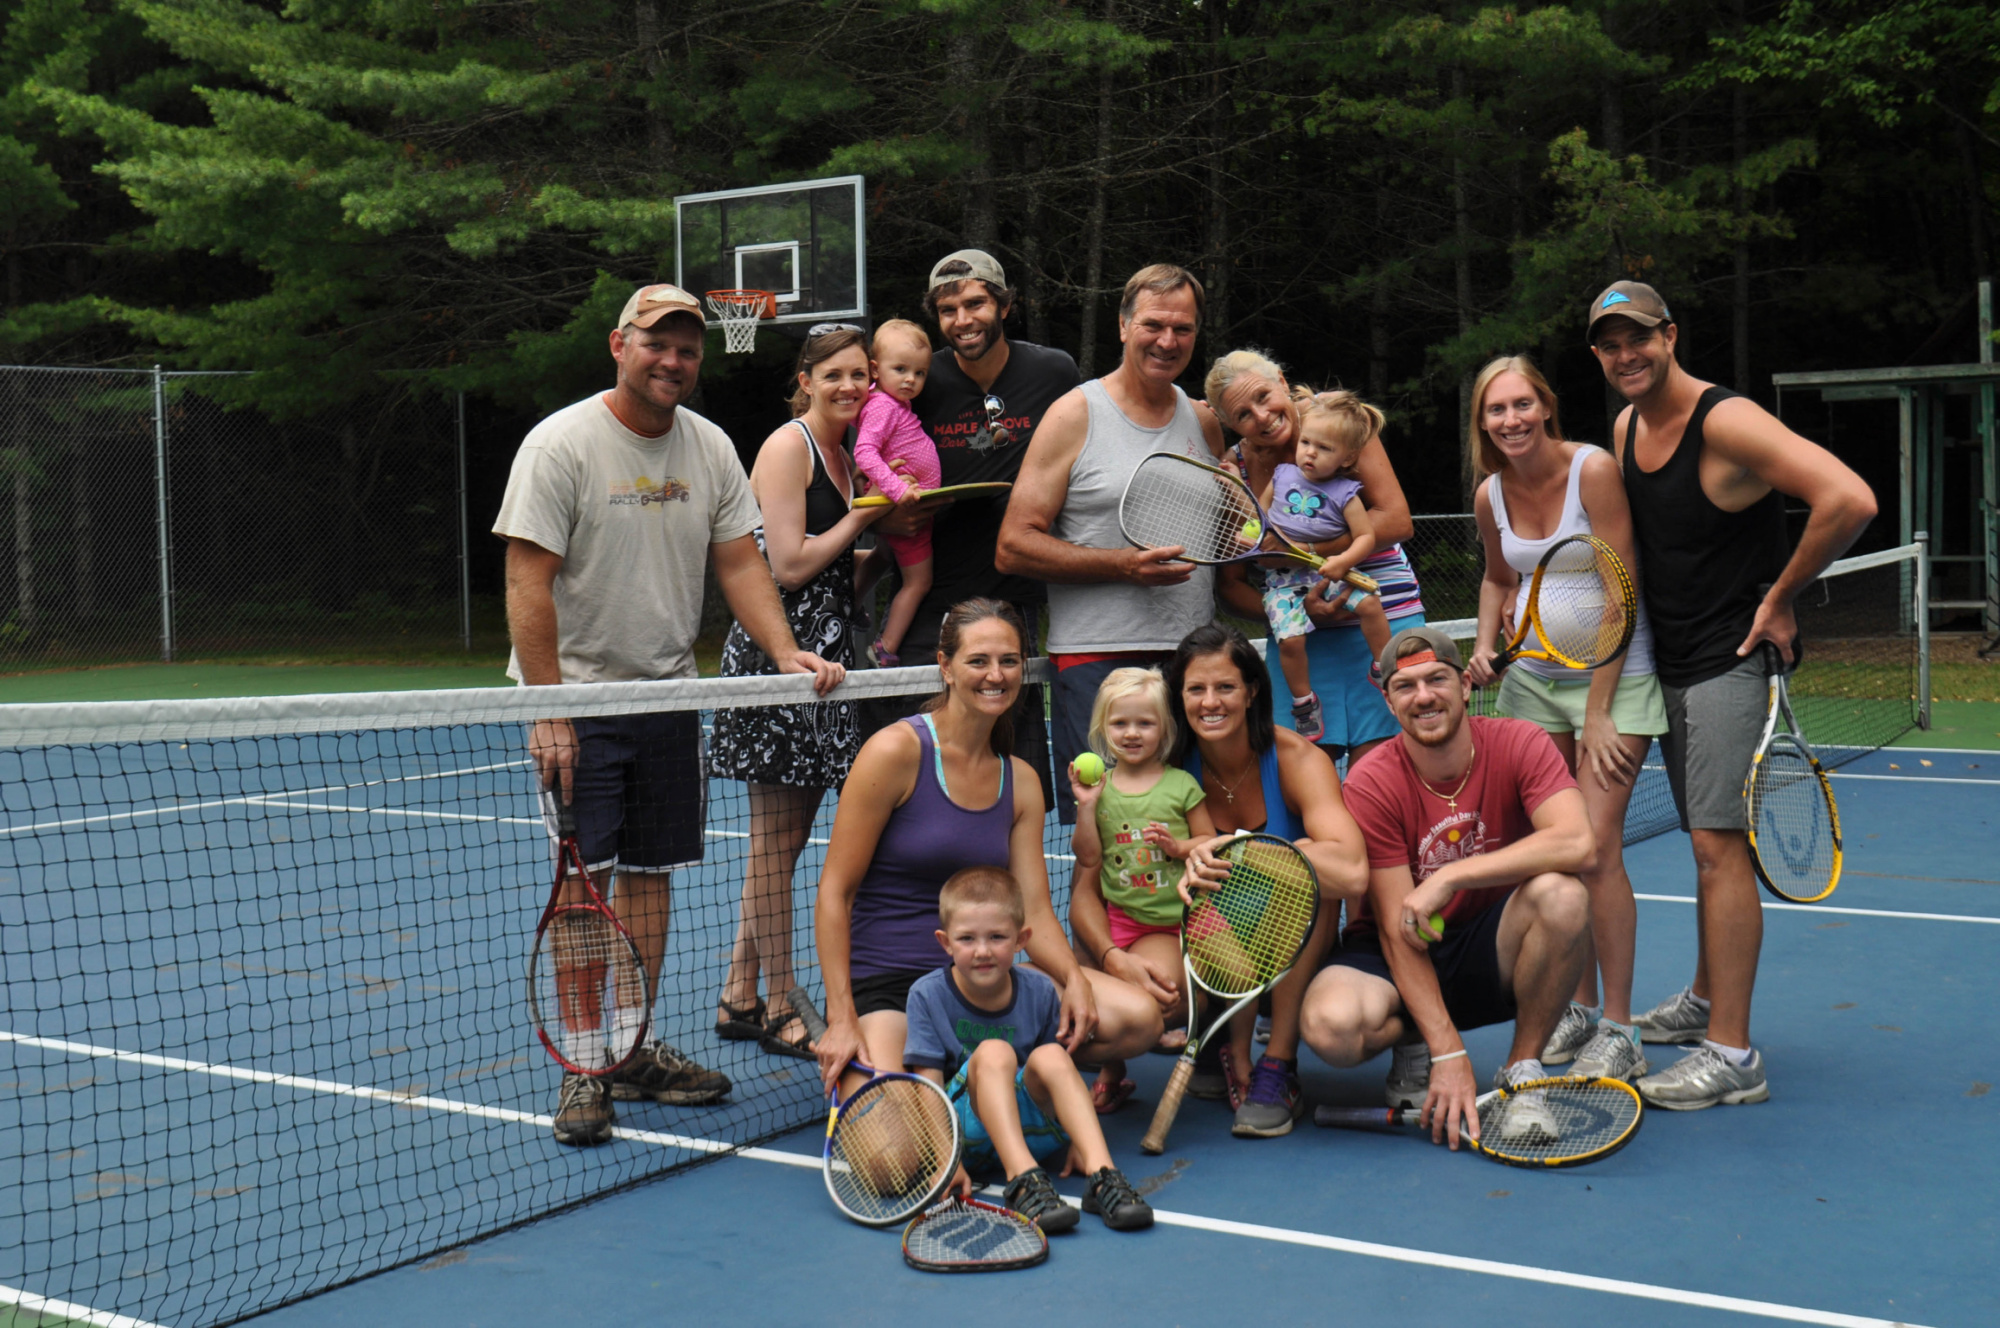 Family tennis, tennis with the tennis club, and teaching grandkids tennis kept competition fun